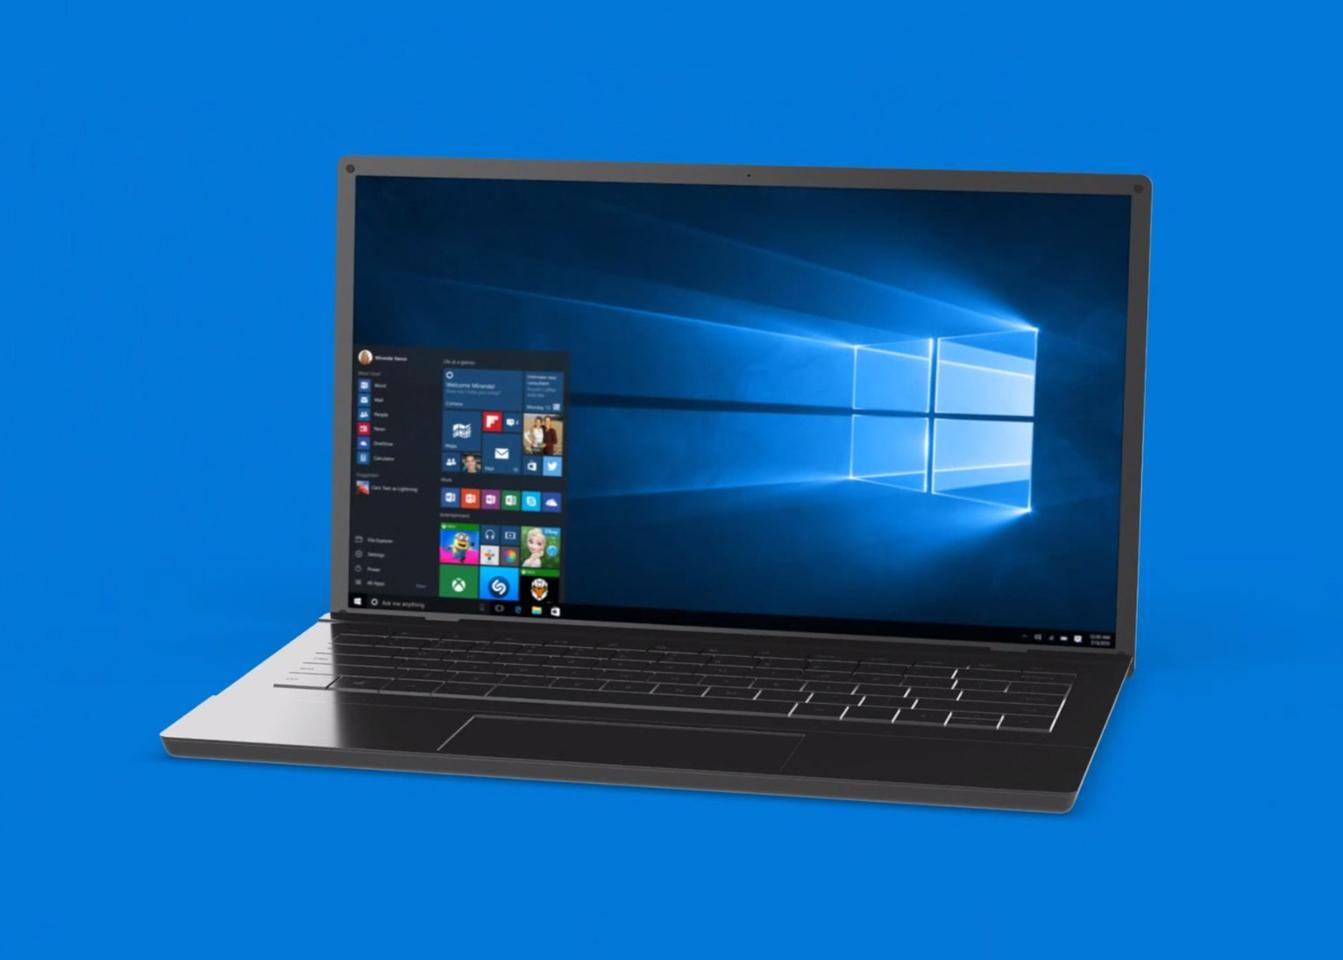 Windows 10 may have more to offer than you realize